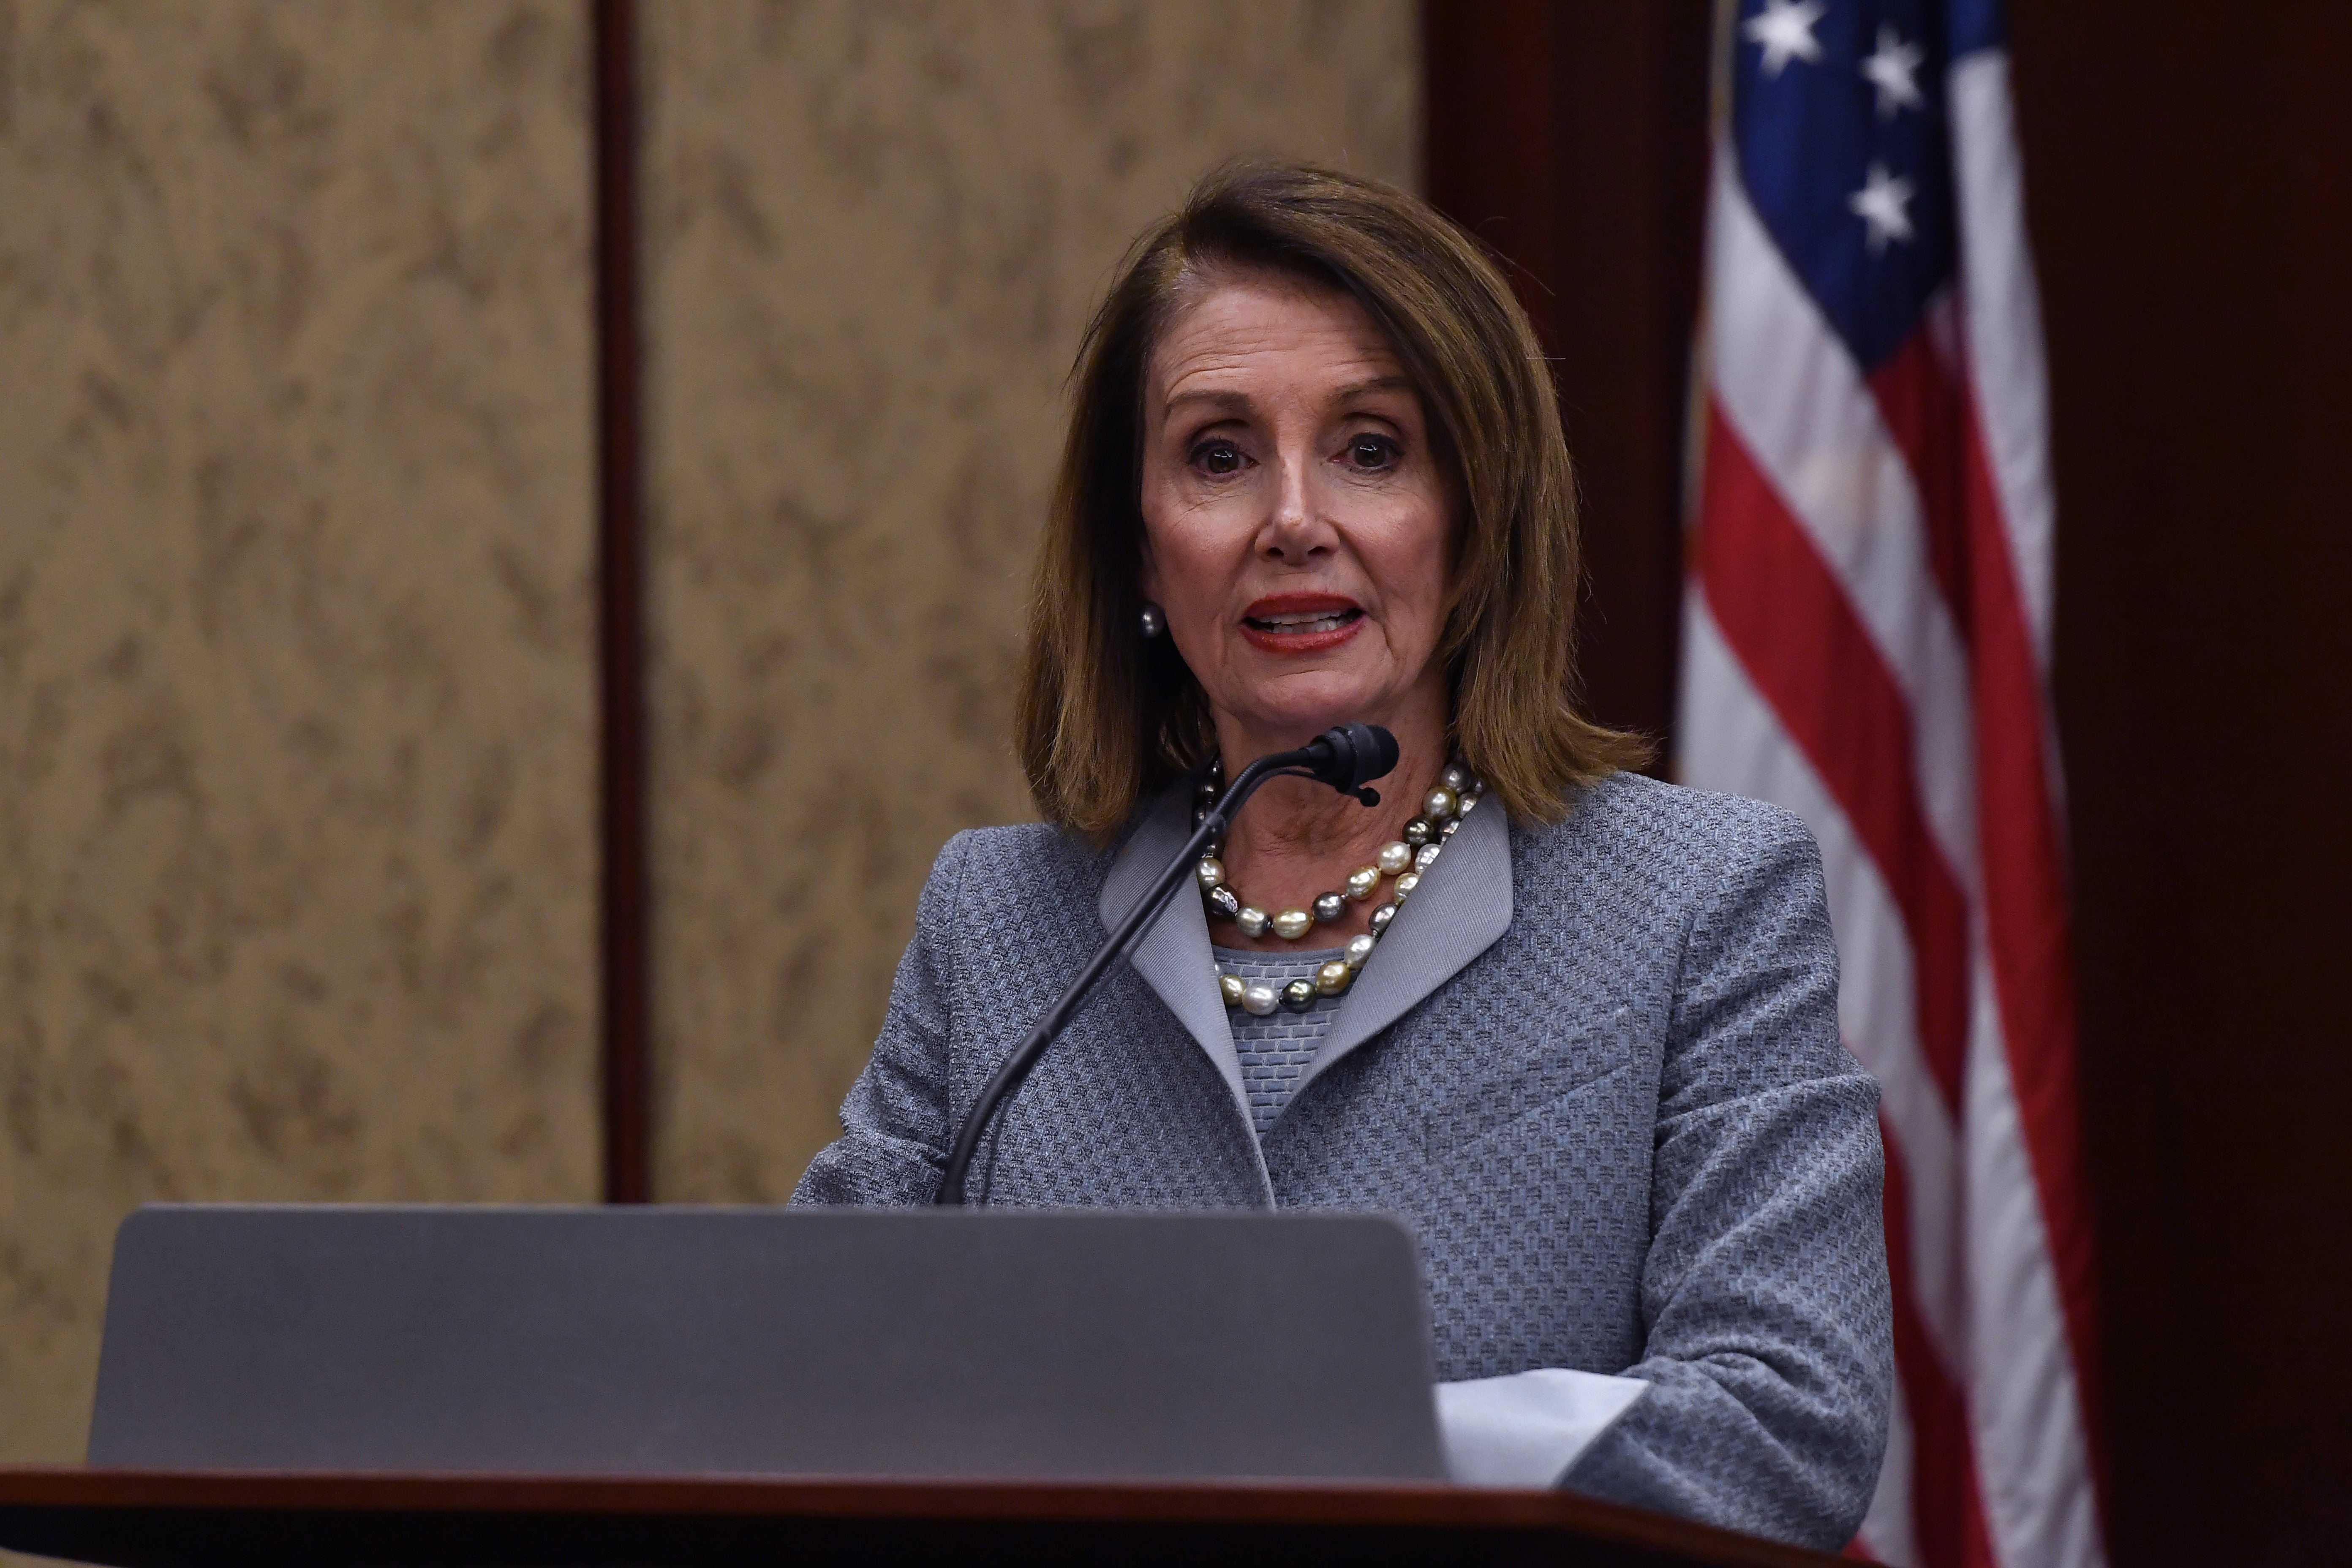 House Speaker Nancy Pelosi delivering a speech at the screening of TransMilitary on Capitol Hill | Photo: Getty Images